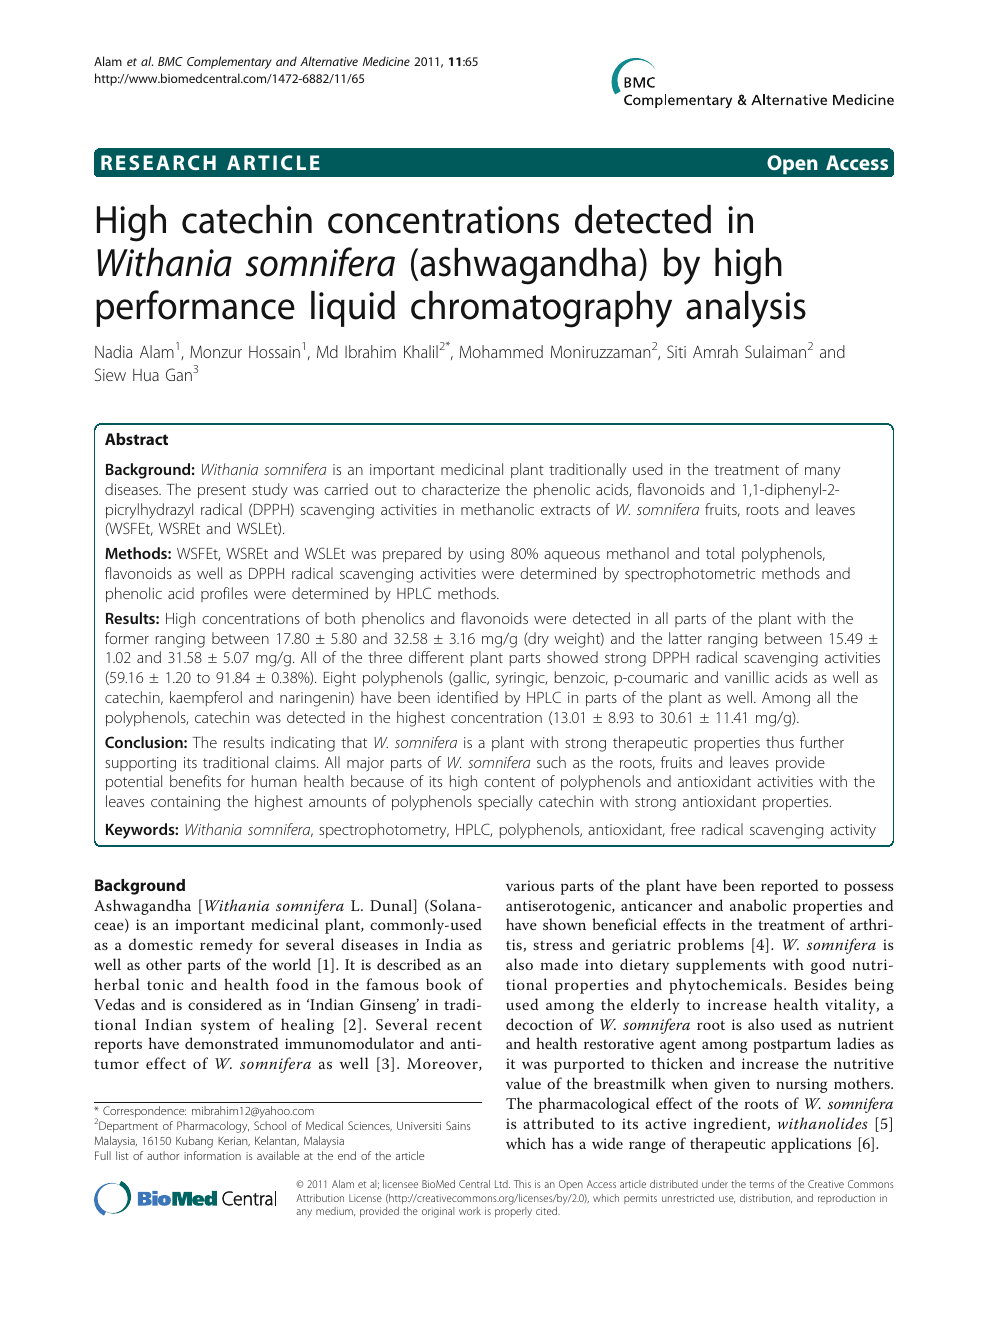 High catechin concentrations detected in Withania somnifera